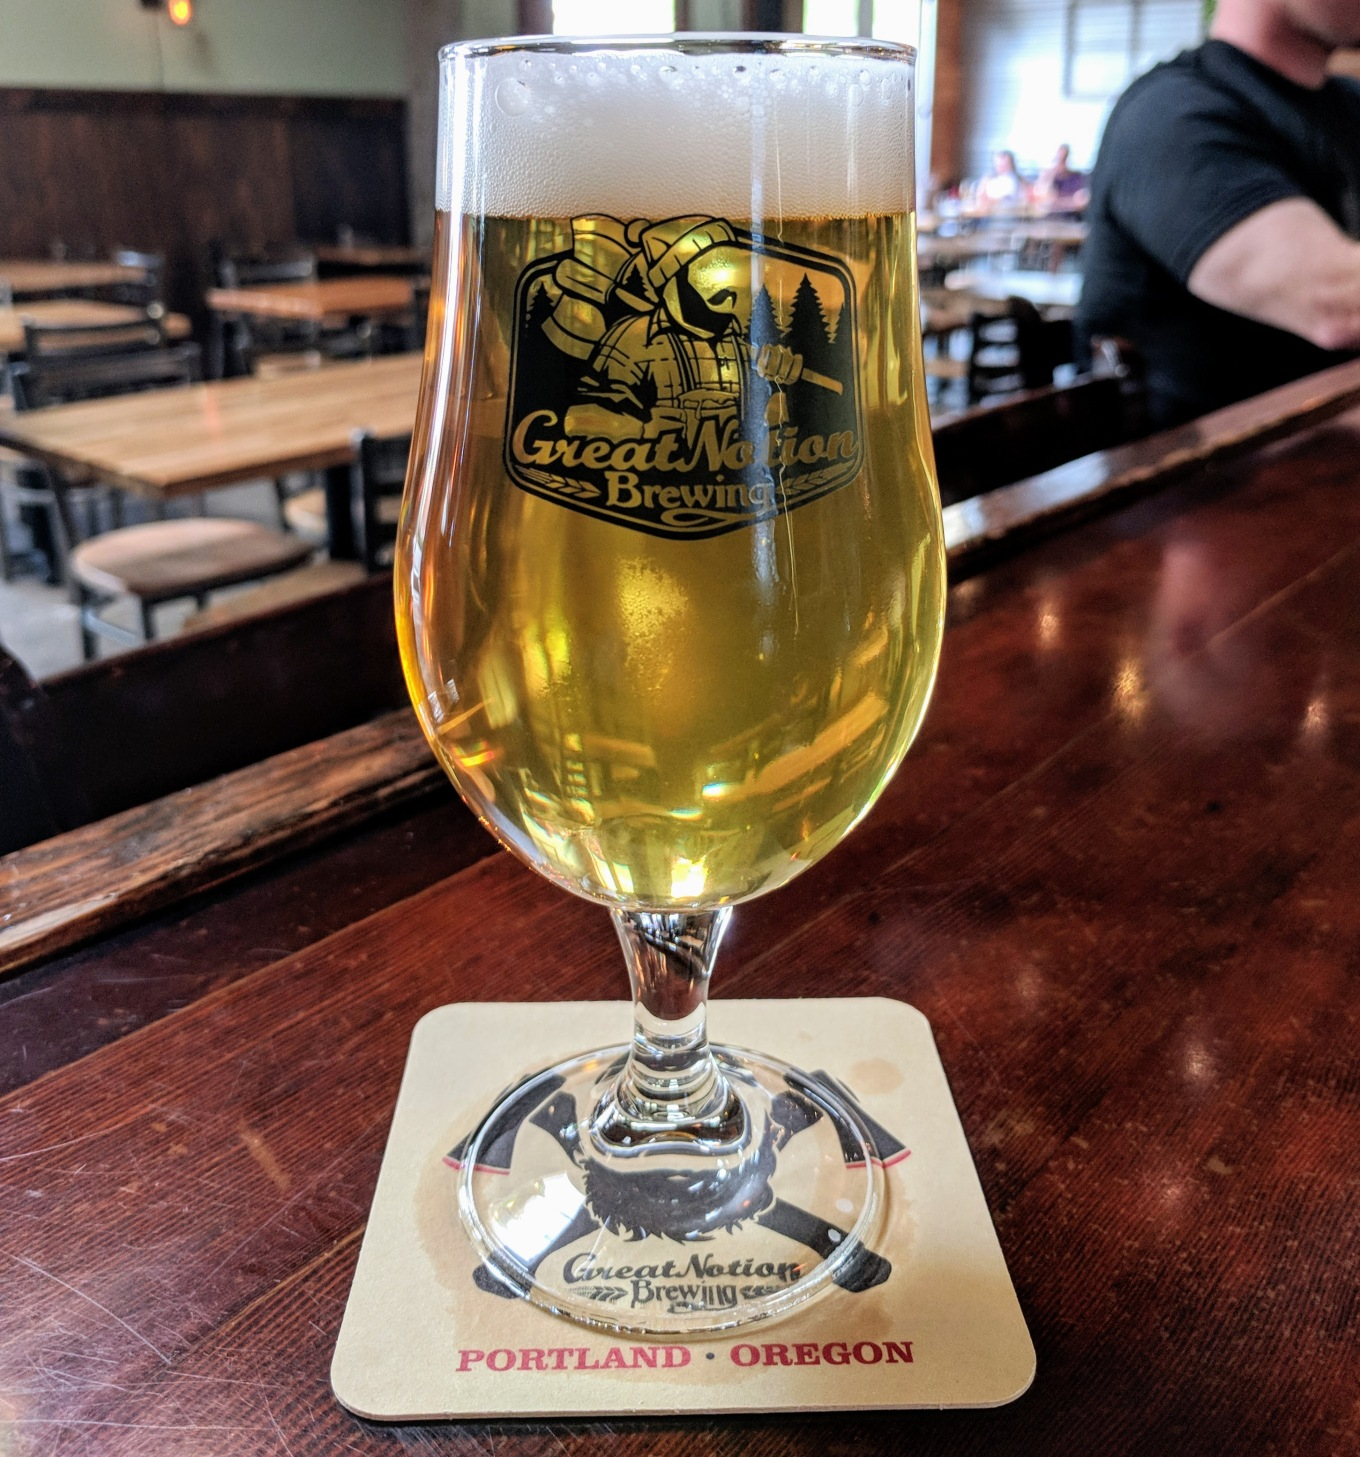 Great Notion Bubbly Brut IPA